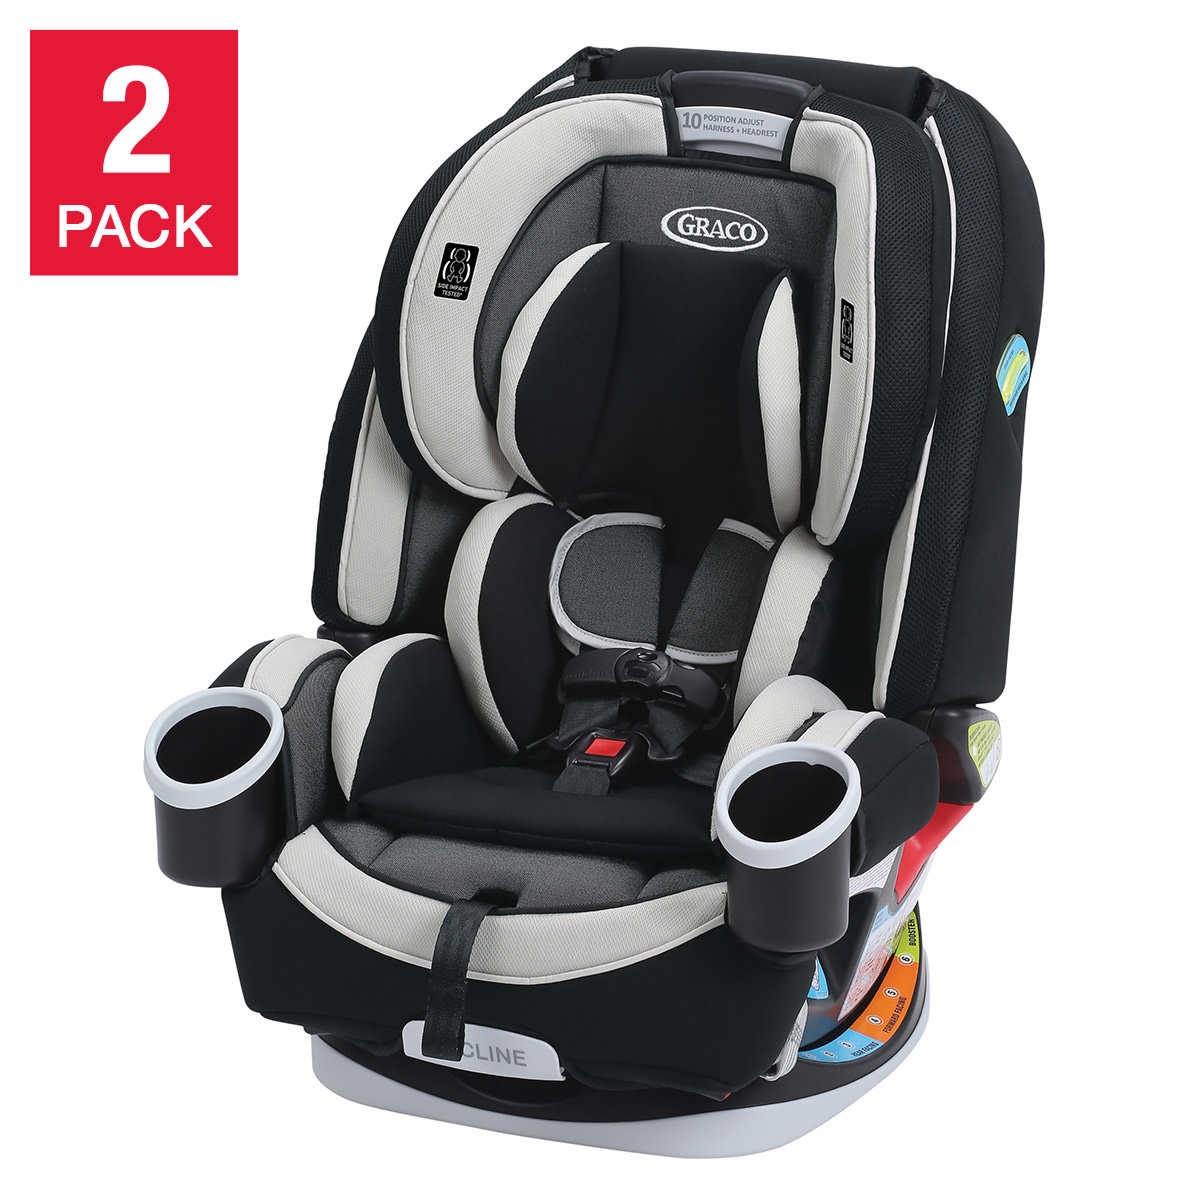 Graco 4ever 4 in 1 convertible car seat 2 pack tuscan